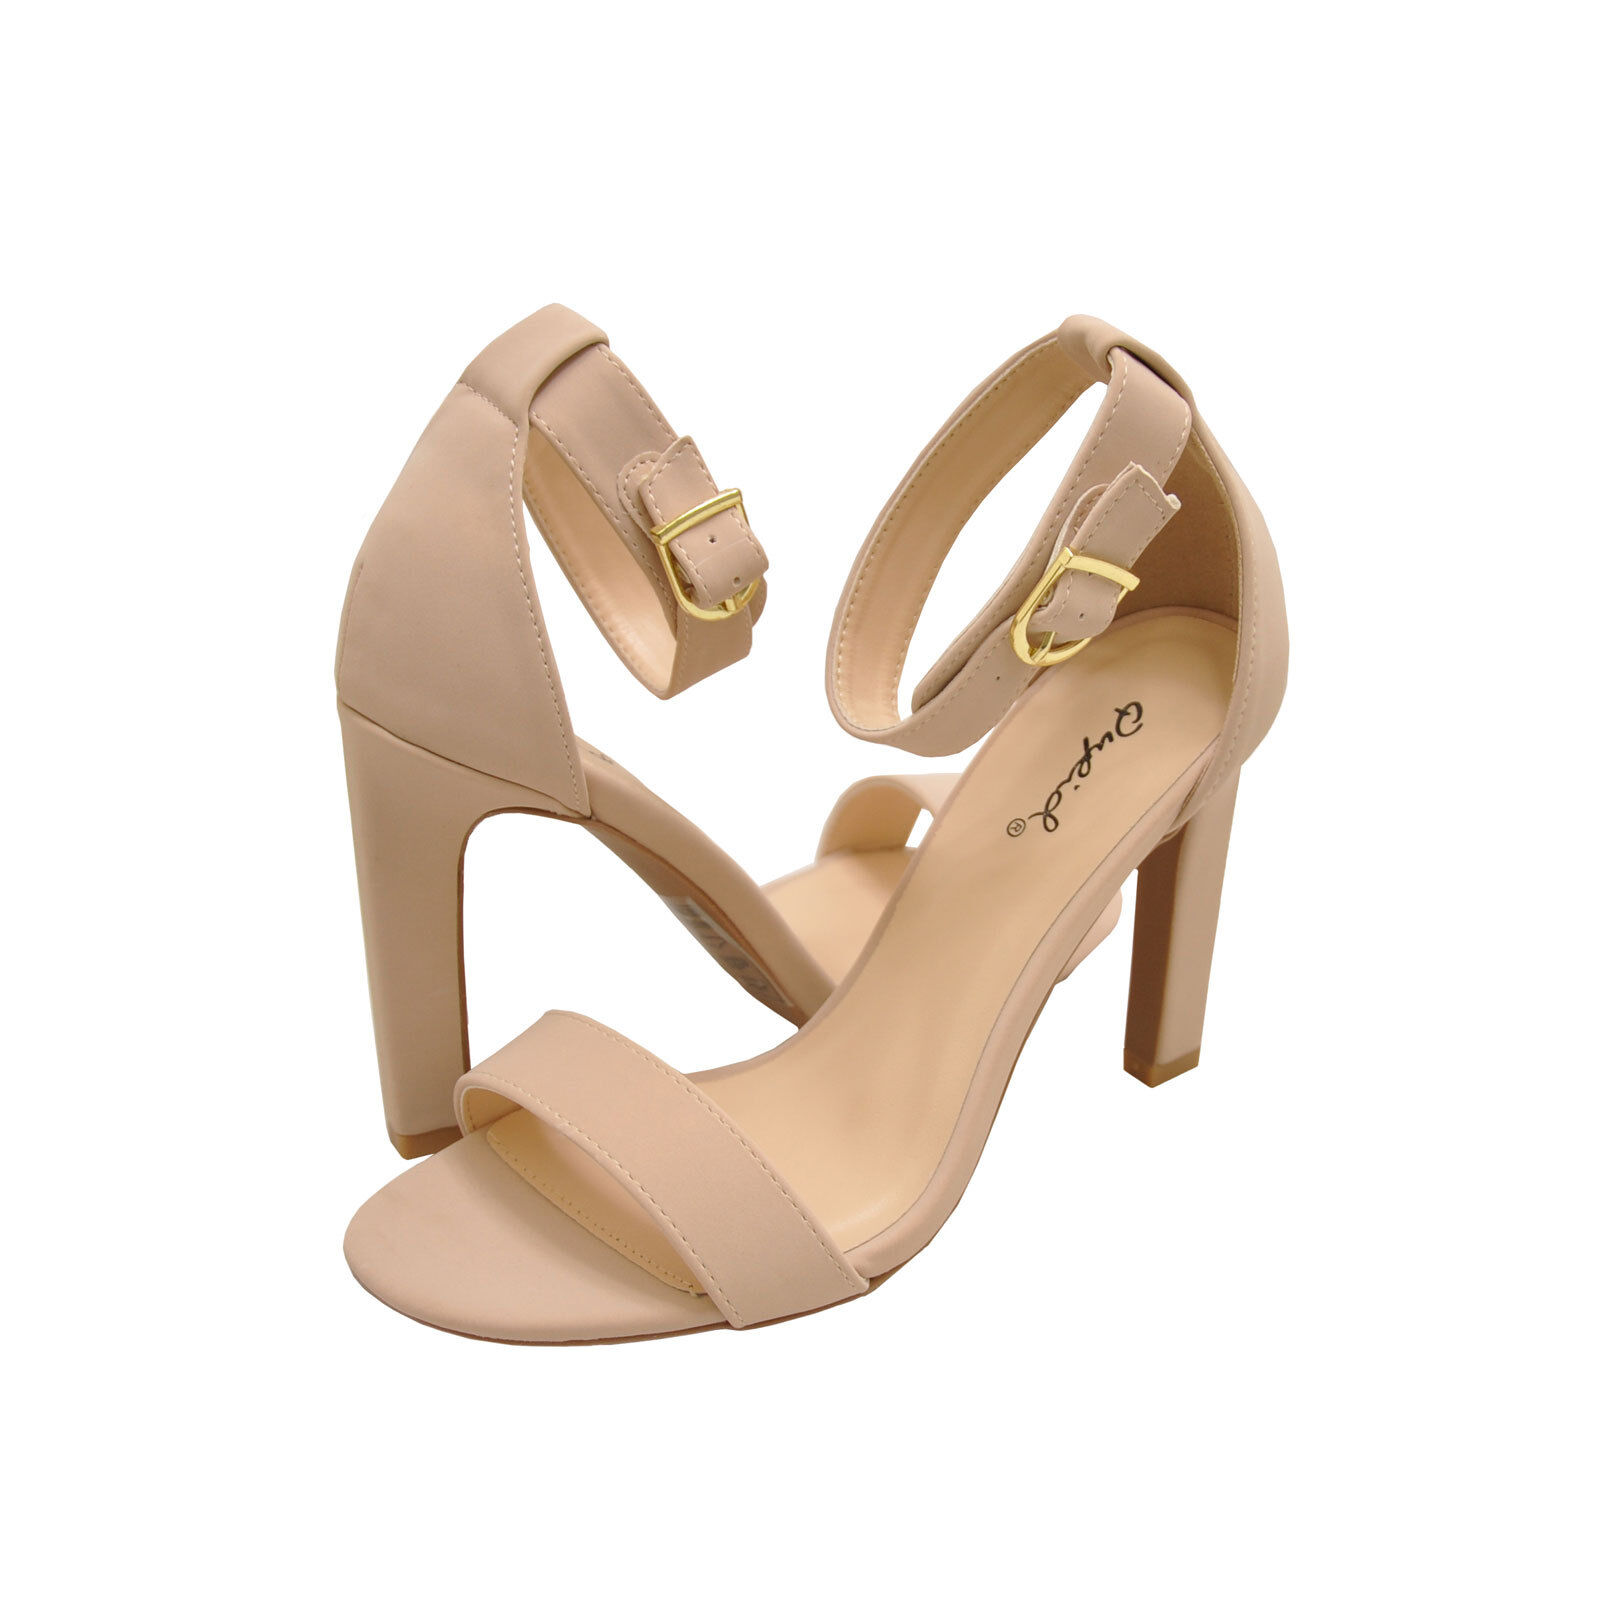 Women's shoes Qupid Hurst 01 Open Toe Ankle Strap Sandal Heels Nude New